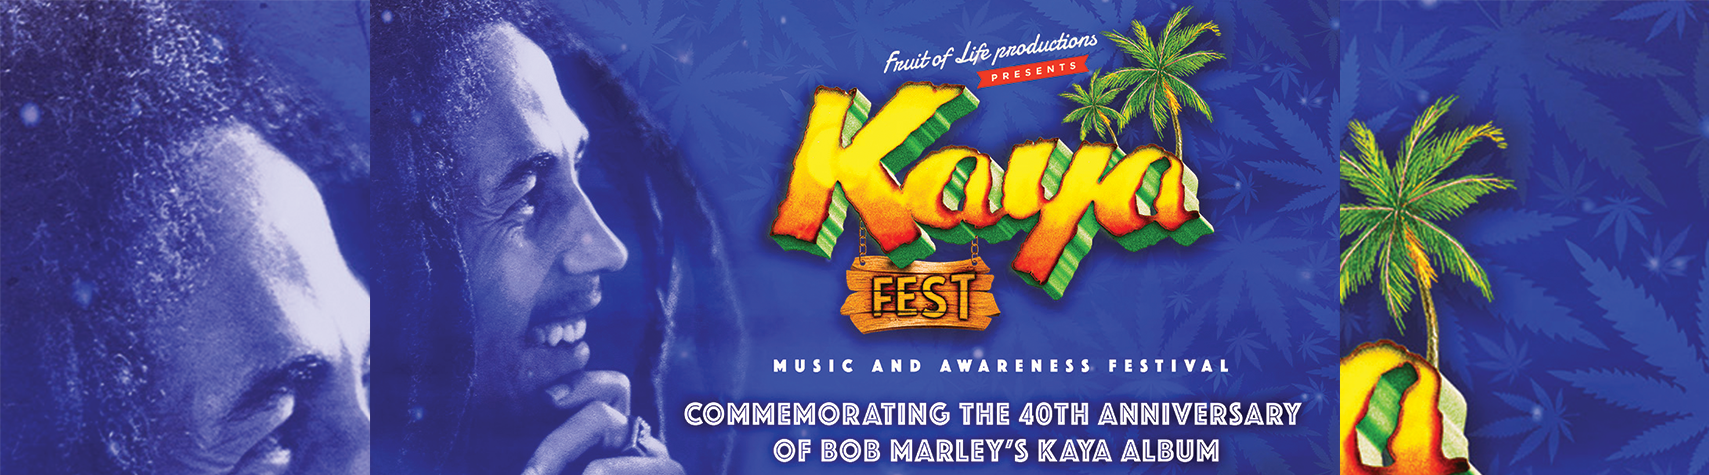 Kaya Fest 2018 Music and Awareness